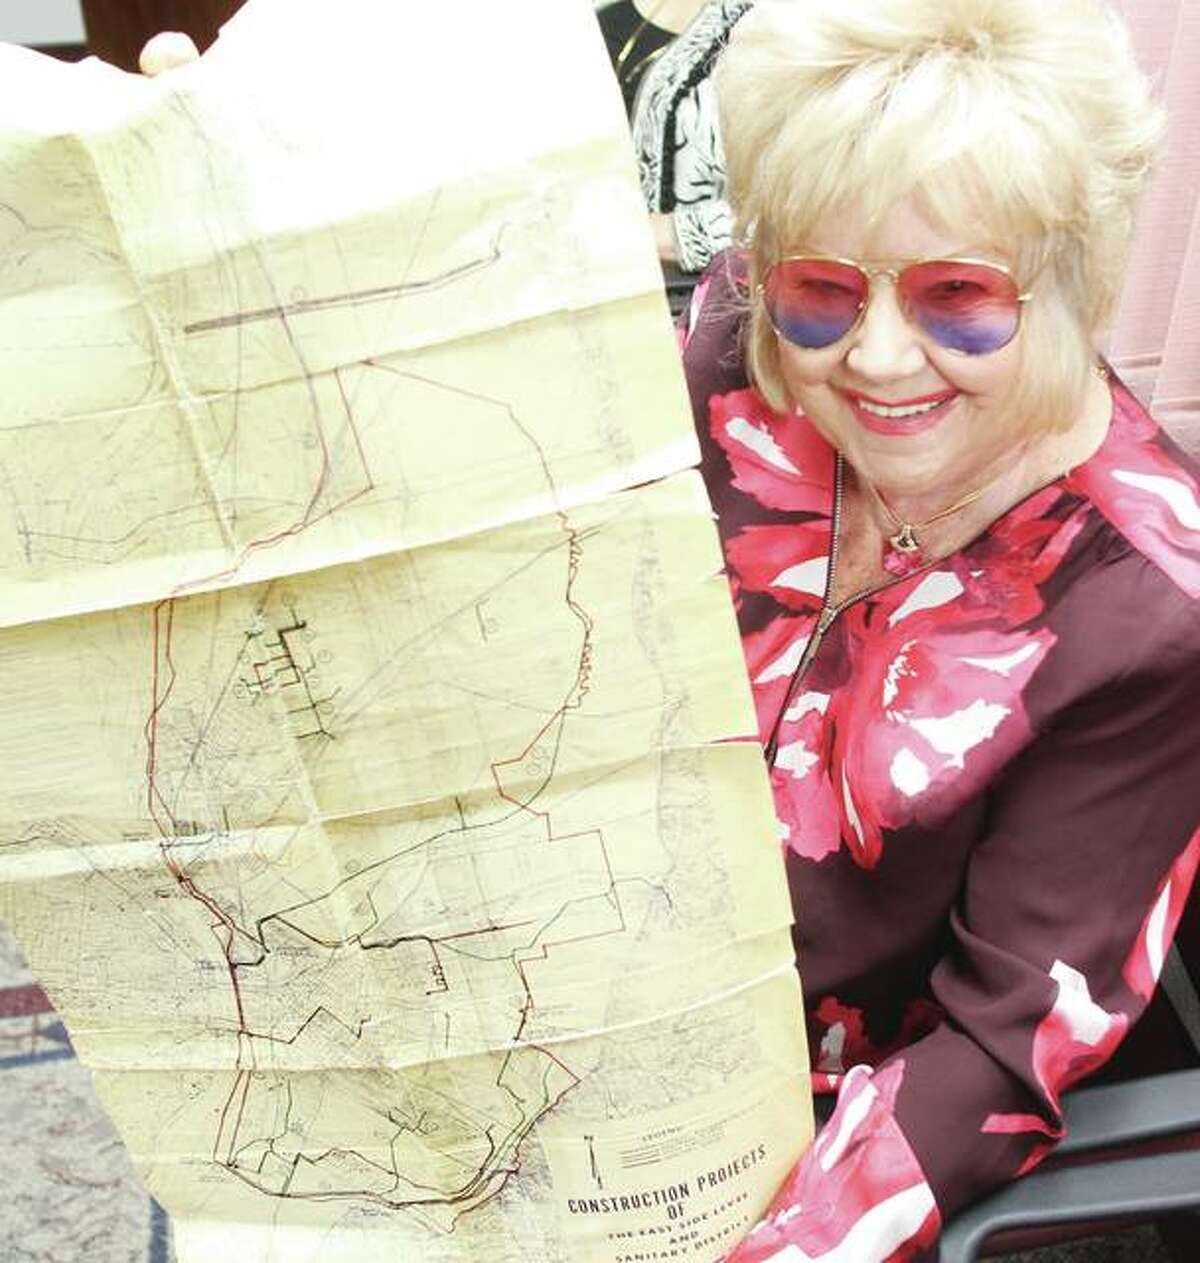 Madison County Board Member Helen Hawkins, D-Granite City, holds an old project map for the East Side Levee and Sanitary District. Hawkins was one of three new appointees to the Metro East Sanitary District board at a Madison County Board meeting last year. Hawkins is to be inducted into the Illinois Senior Citizen Hall of Fame in February.